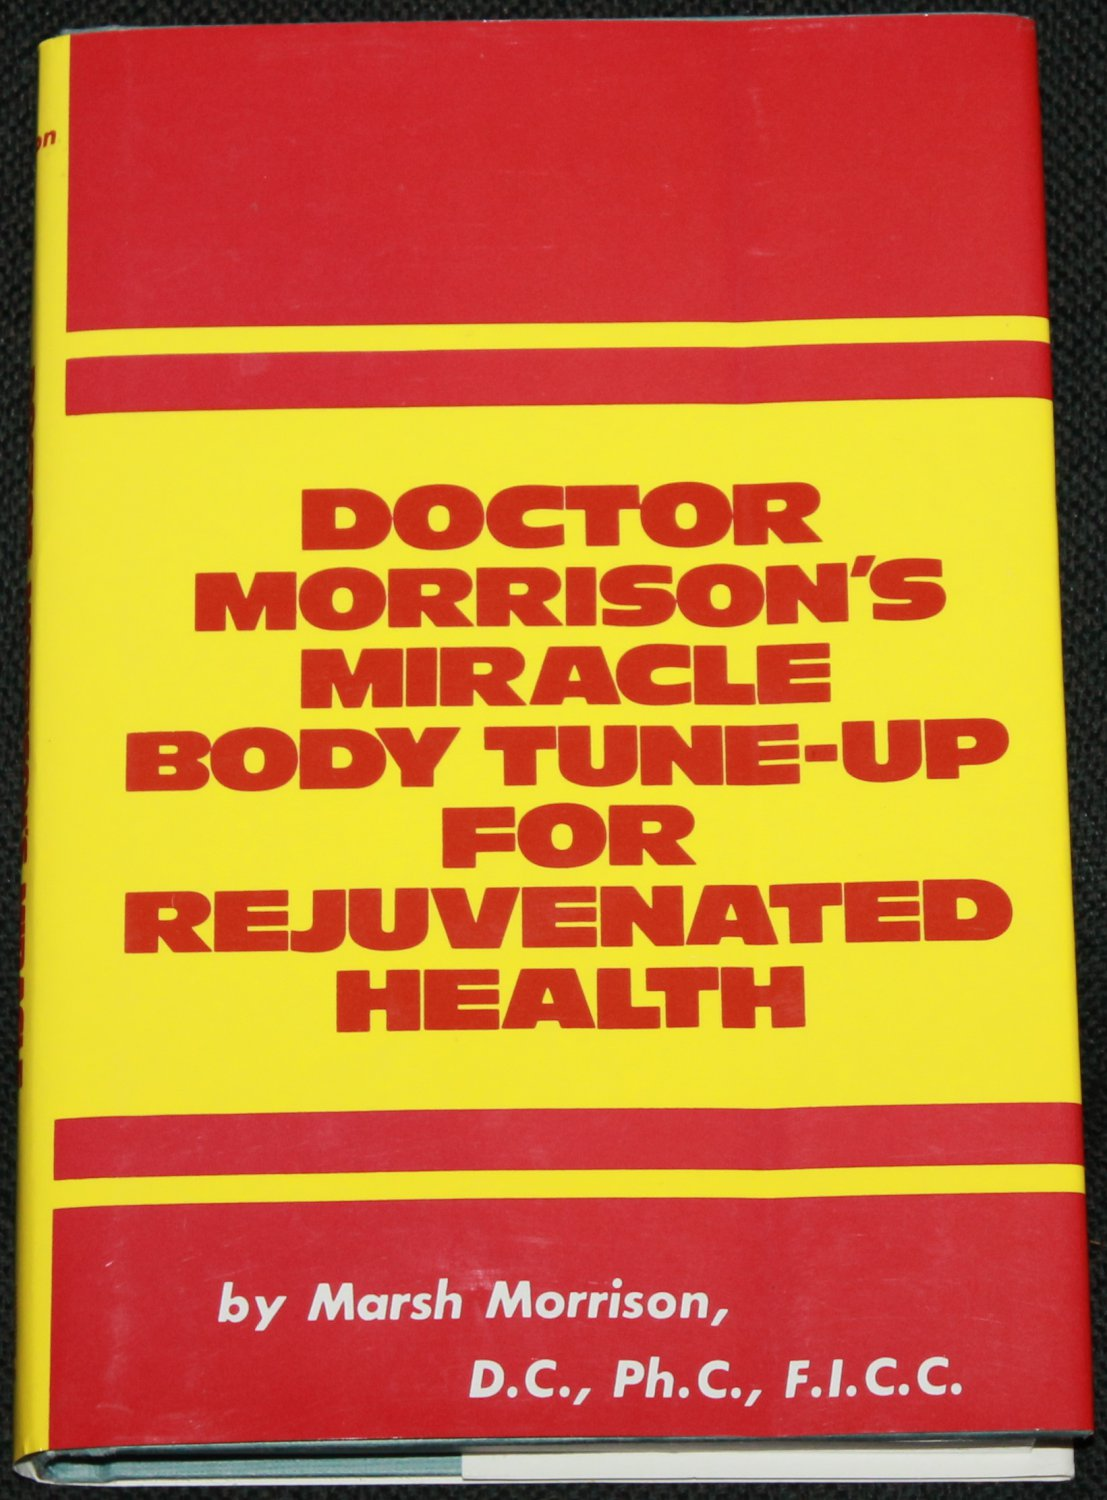 Doctor Morrison's Miracle Body Tune-Up For Reuvinated Health